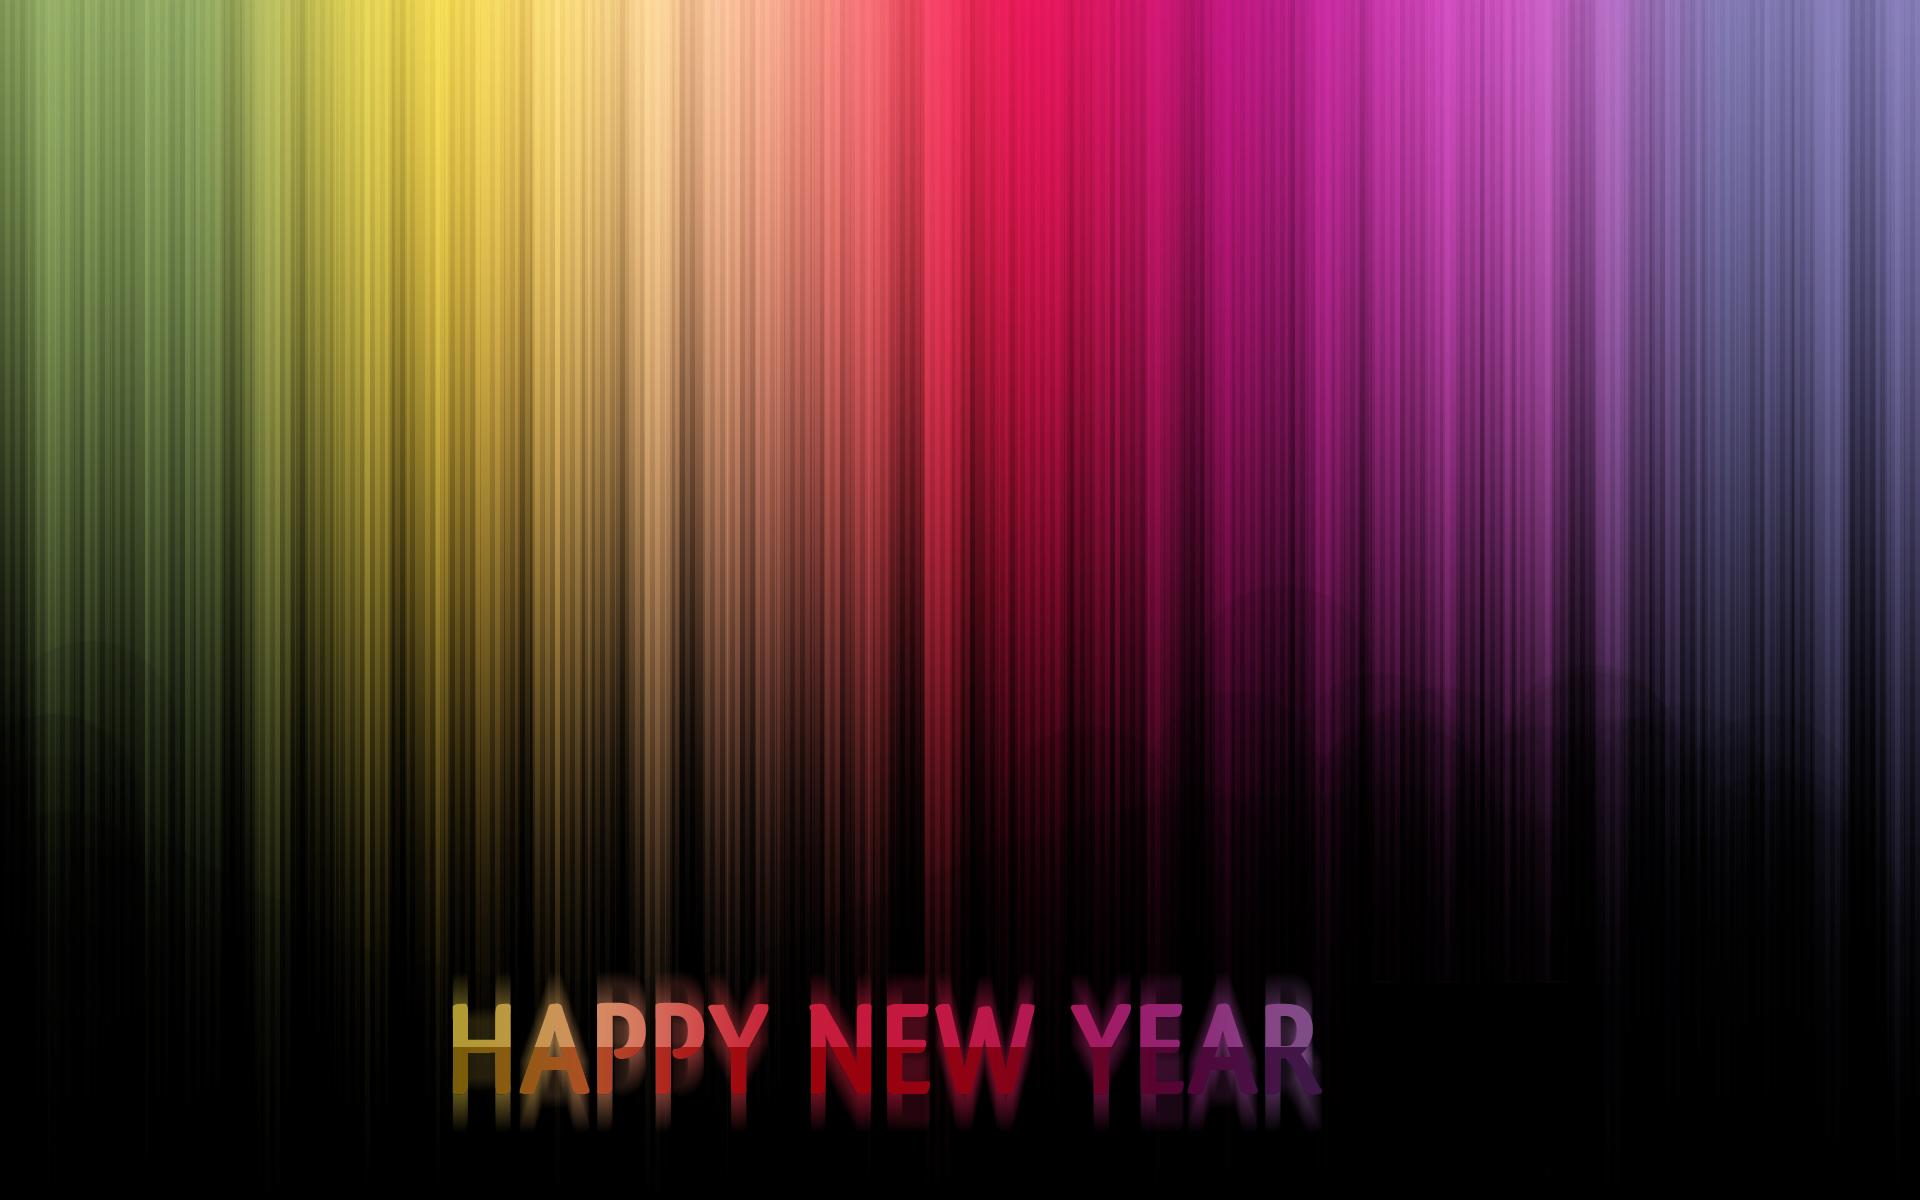 Abstract Free Wallpaper New Years 2013 Wallpaper